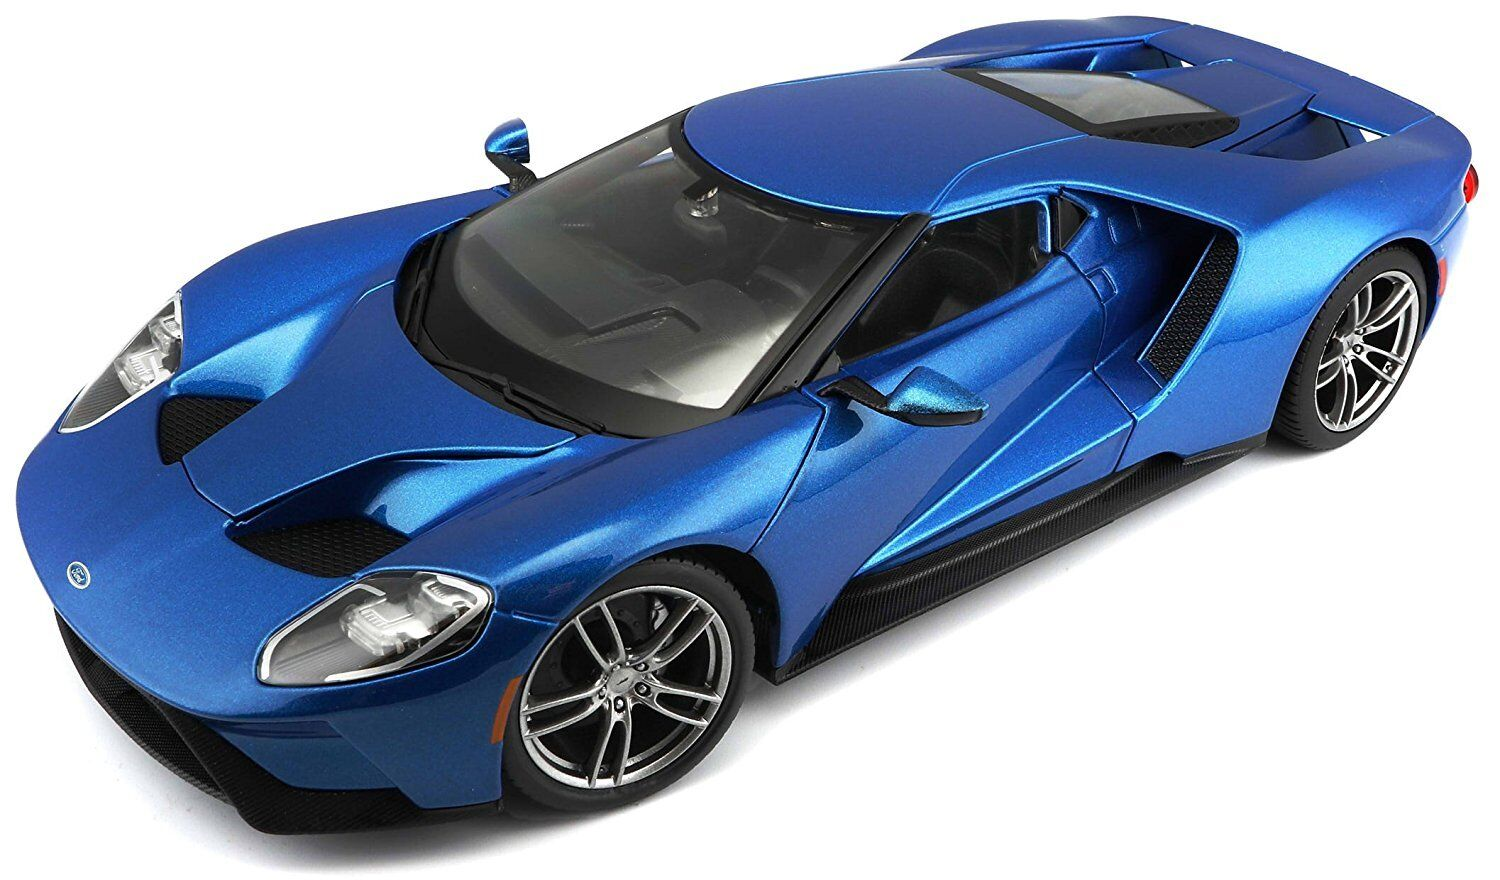 Maisto 1 18 2017 Ford GT Concept Diecast Model Sports Racing Car Vehicle bluee